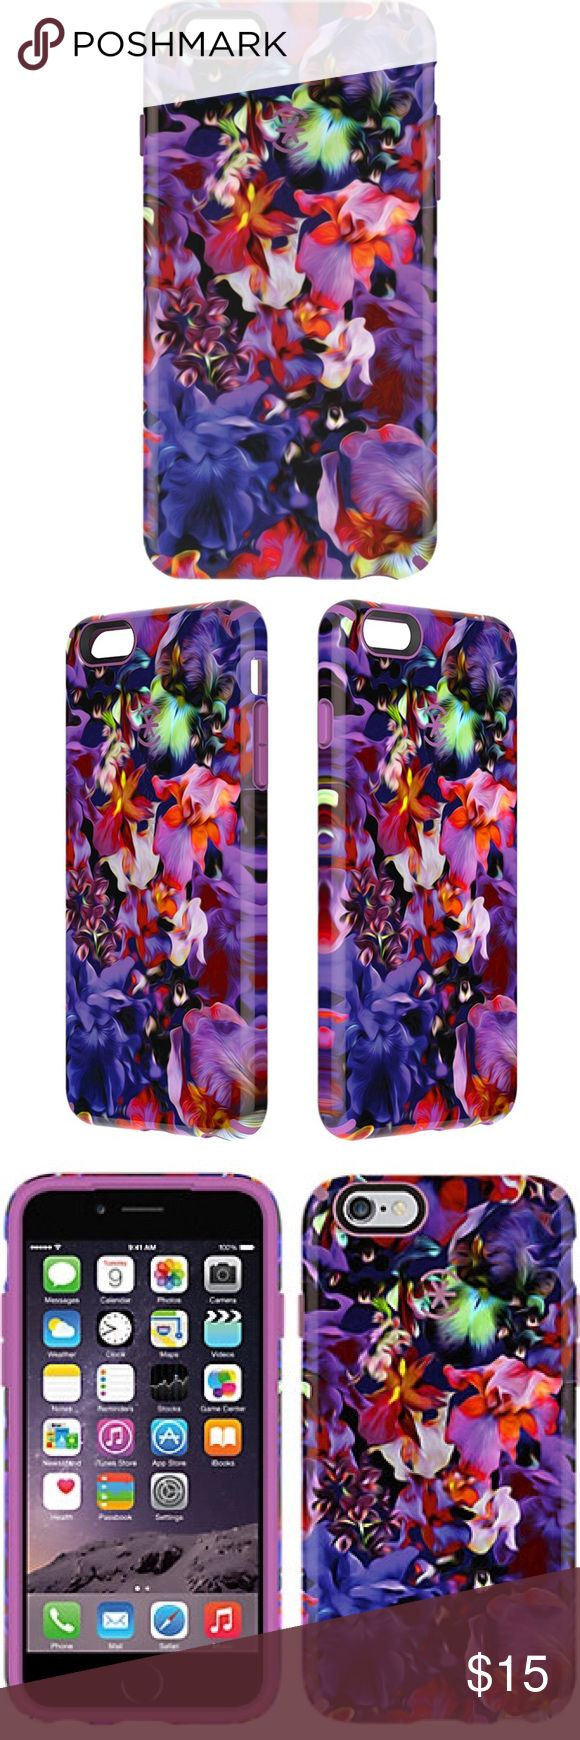 Floral IPHONE 6S PLUS AND IPHONE 6 PLUS CASE High-res graphics wrapped around a sleek, military-grade protective phone case, slight marks on floral side that cannot be seen straight on Speck Accessories Phone Cases